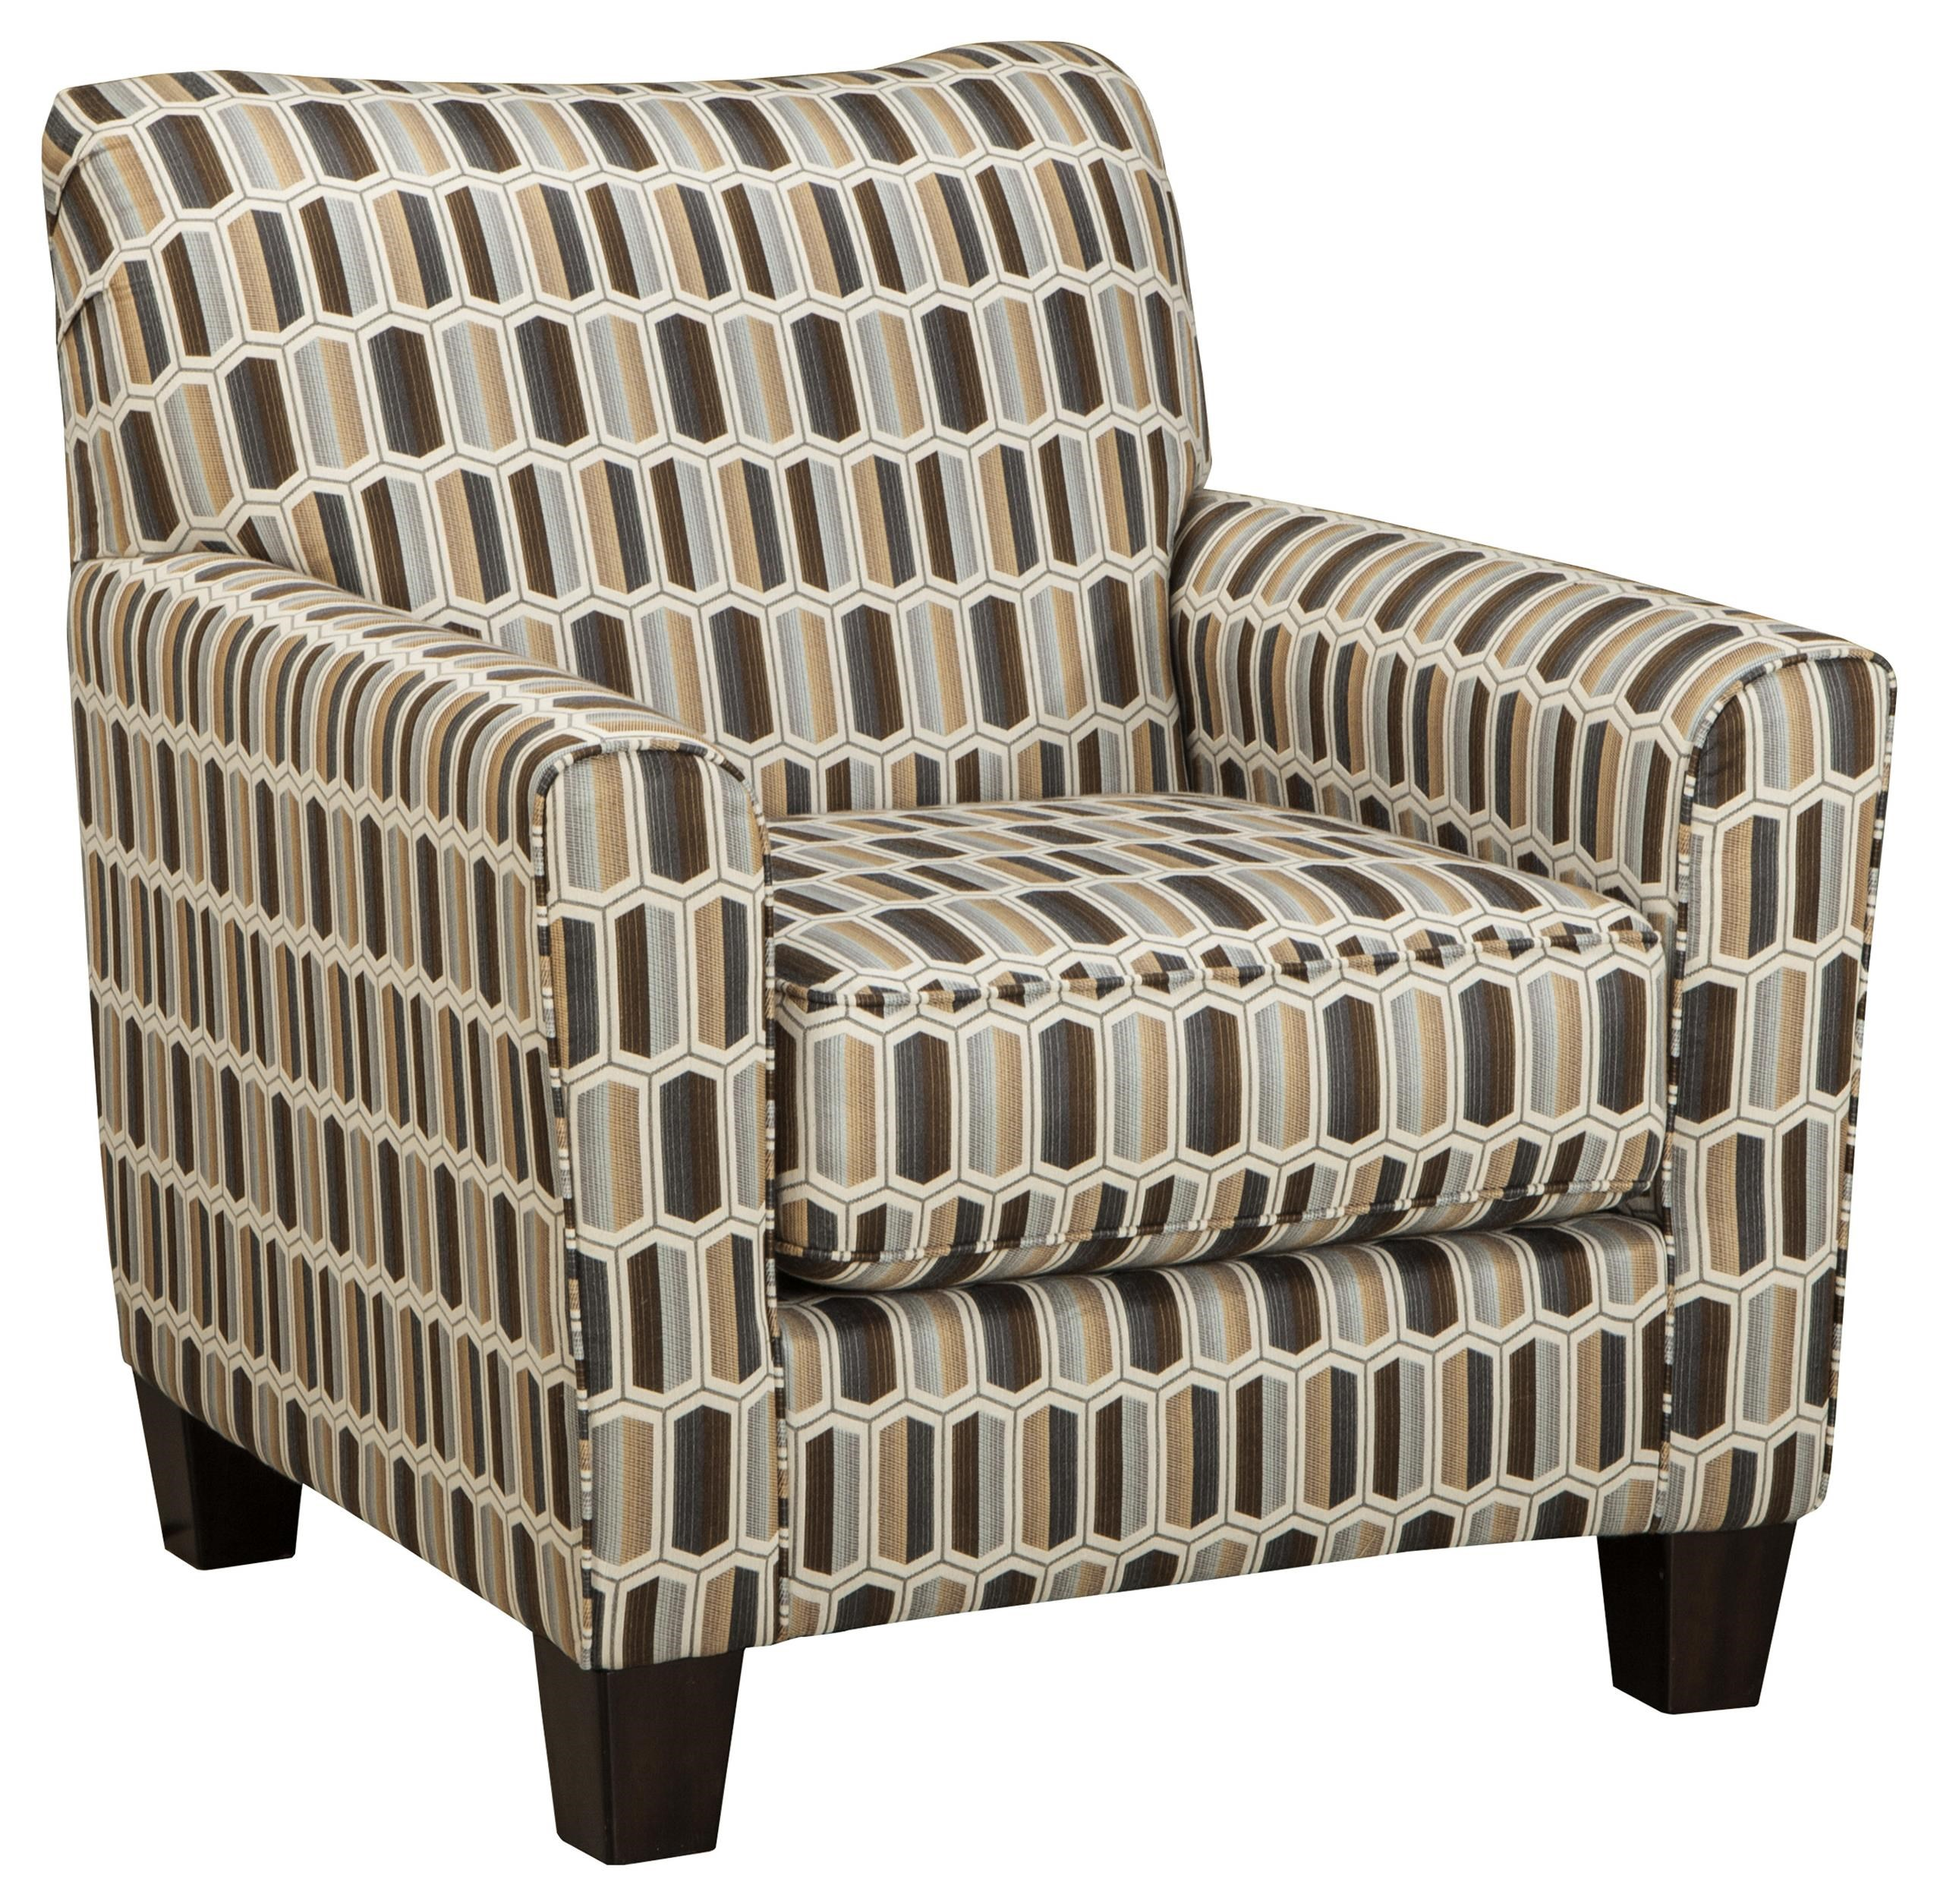 Janley Contemporary Accent Chair With Geometric Print Fabric   Becker  Furniture World   Upholstered Chairs